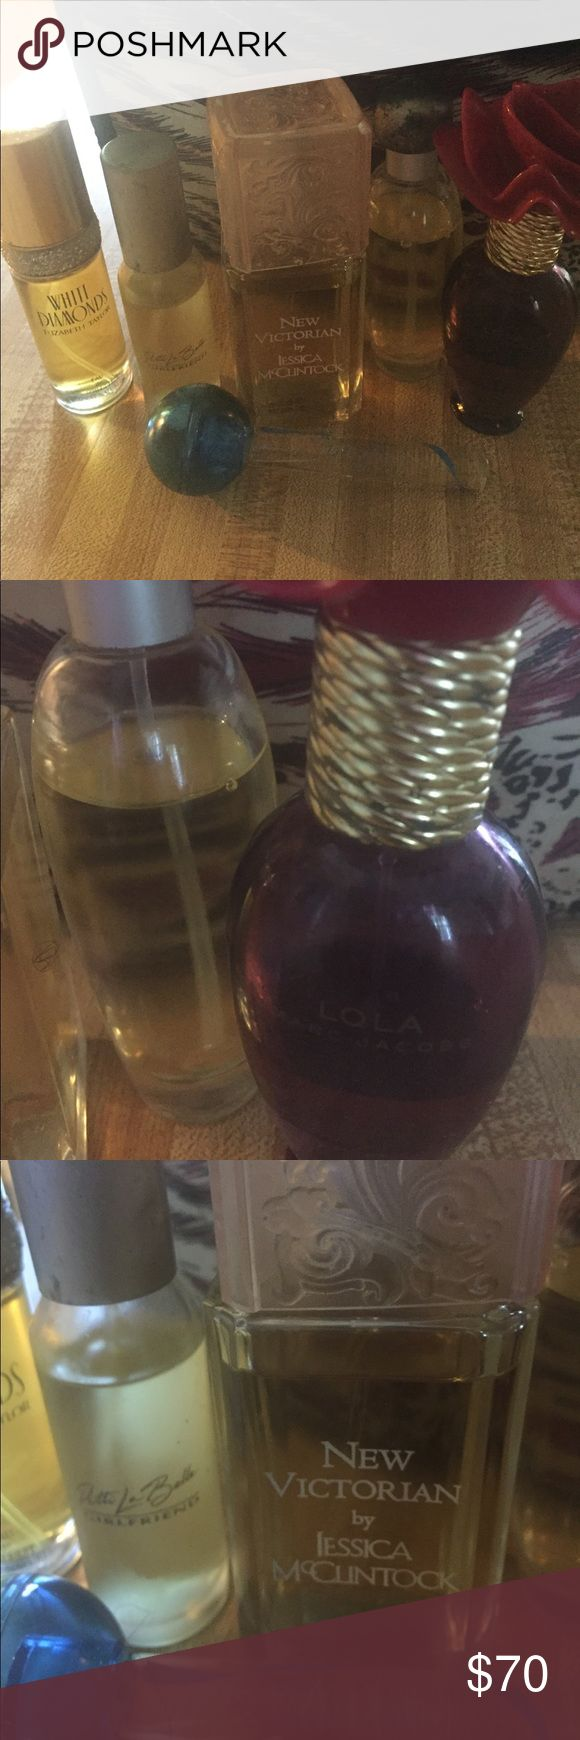 Perfume all included in price Marc jacobs Lola, Jessica McClintock New Victorian, Elizabeth Taylor white diamonds,este lauded pleasure,patti labels Girl friend, Mariah Carey lollipop bling ribbon Other